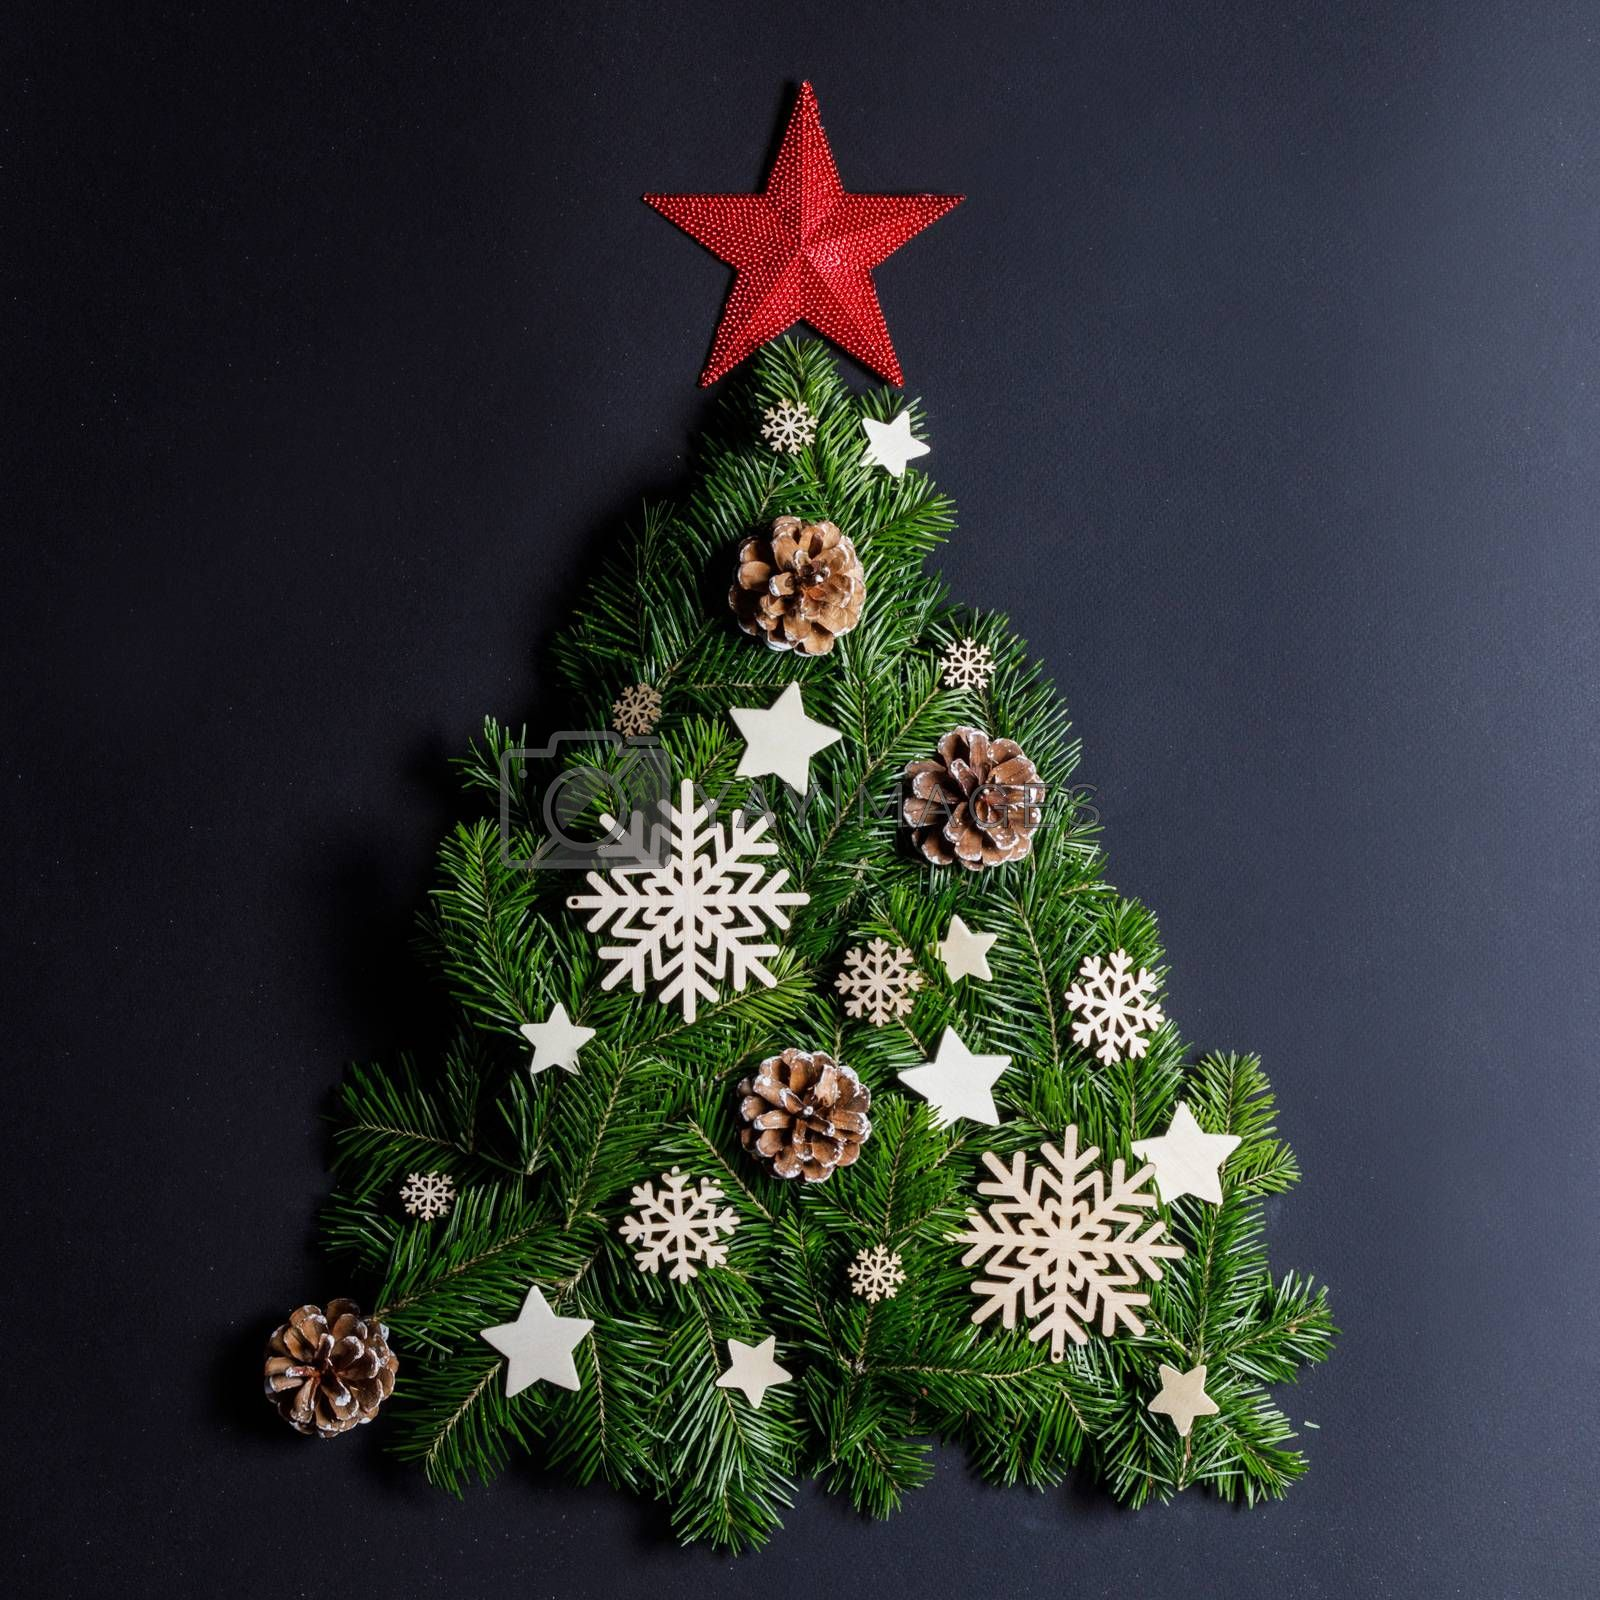 Christmas tree made of natural spruce branches deecor with red star on black background, flat lay card with copy space